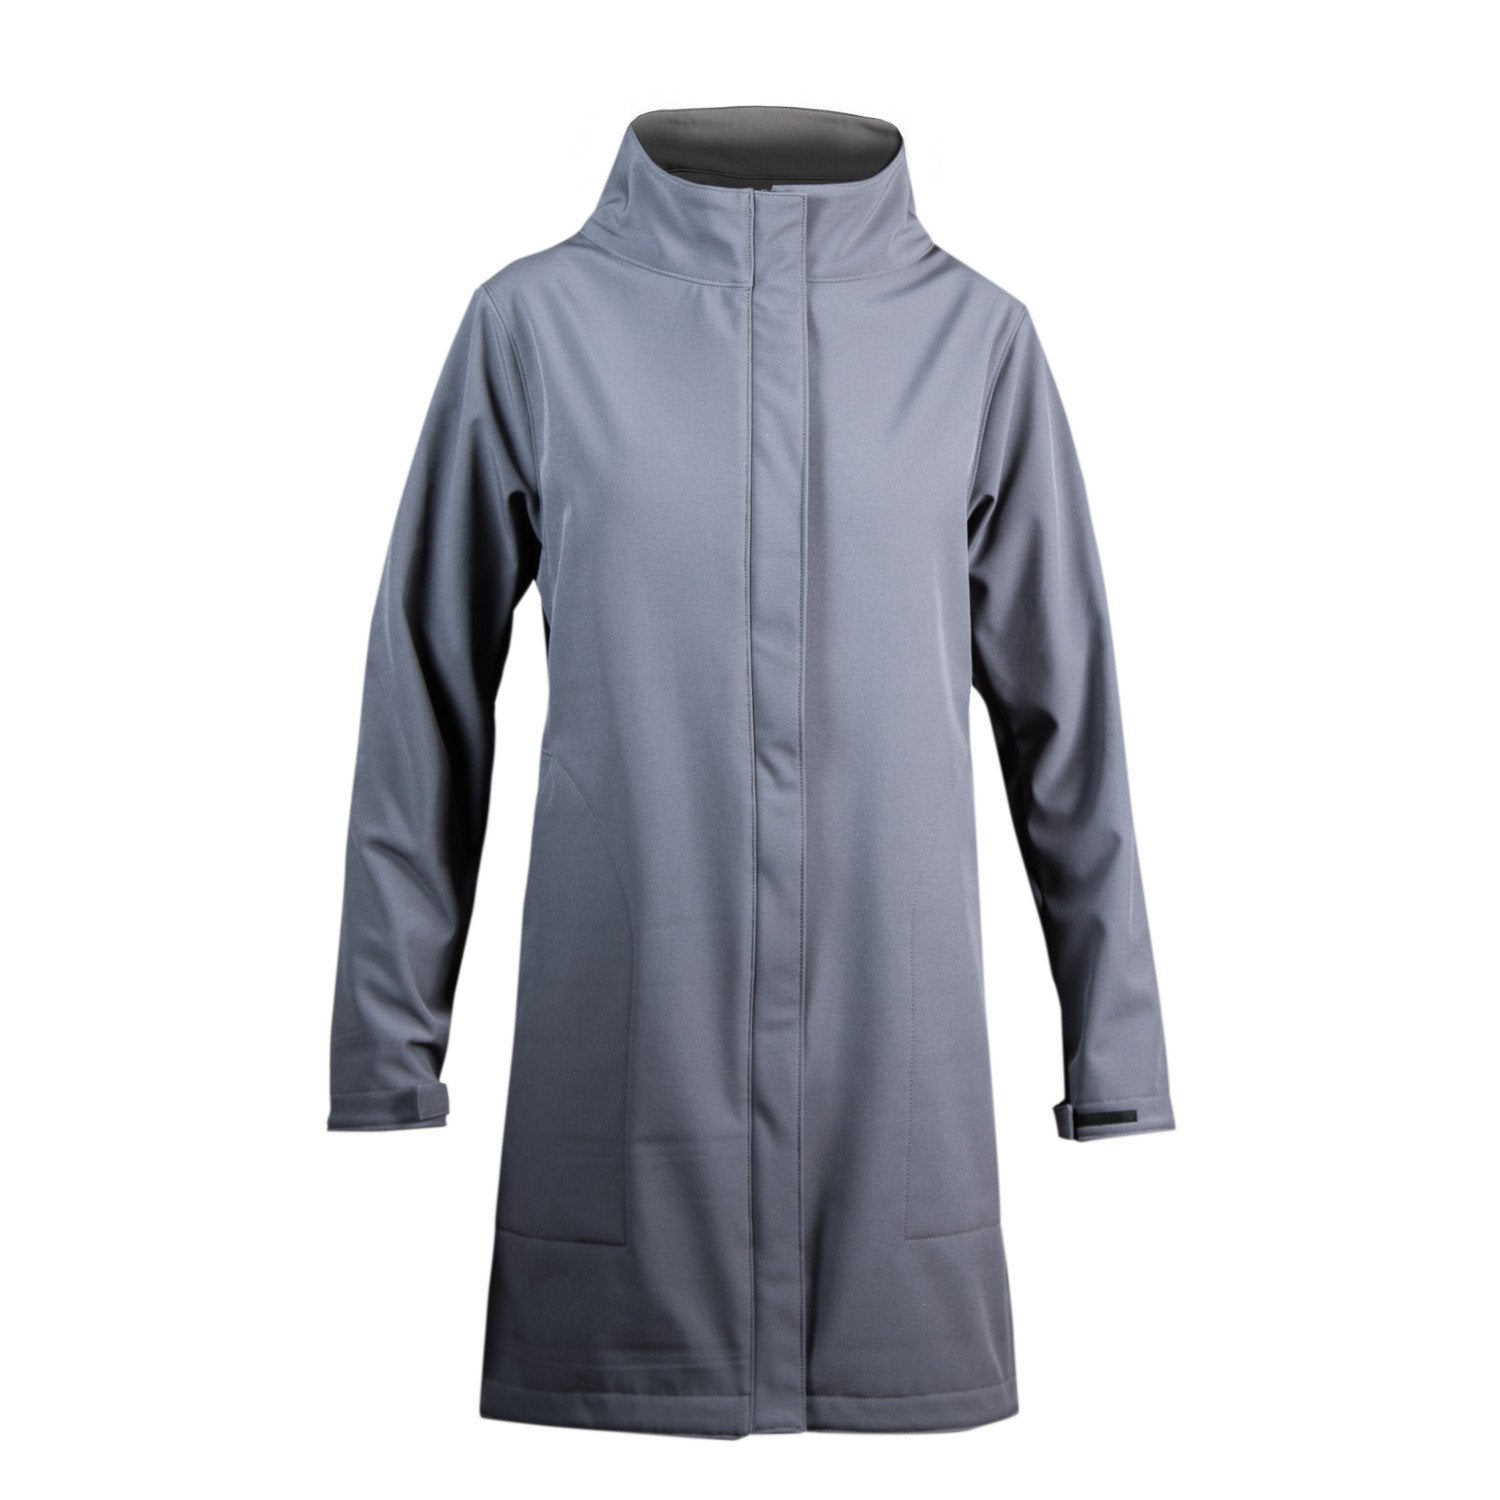 Women's Gray Upcycled Softshell Duster Jacket Apparel - Looptworks